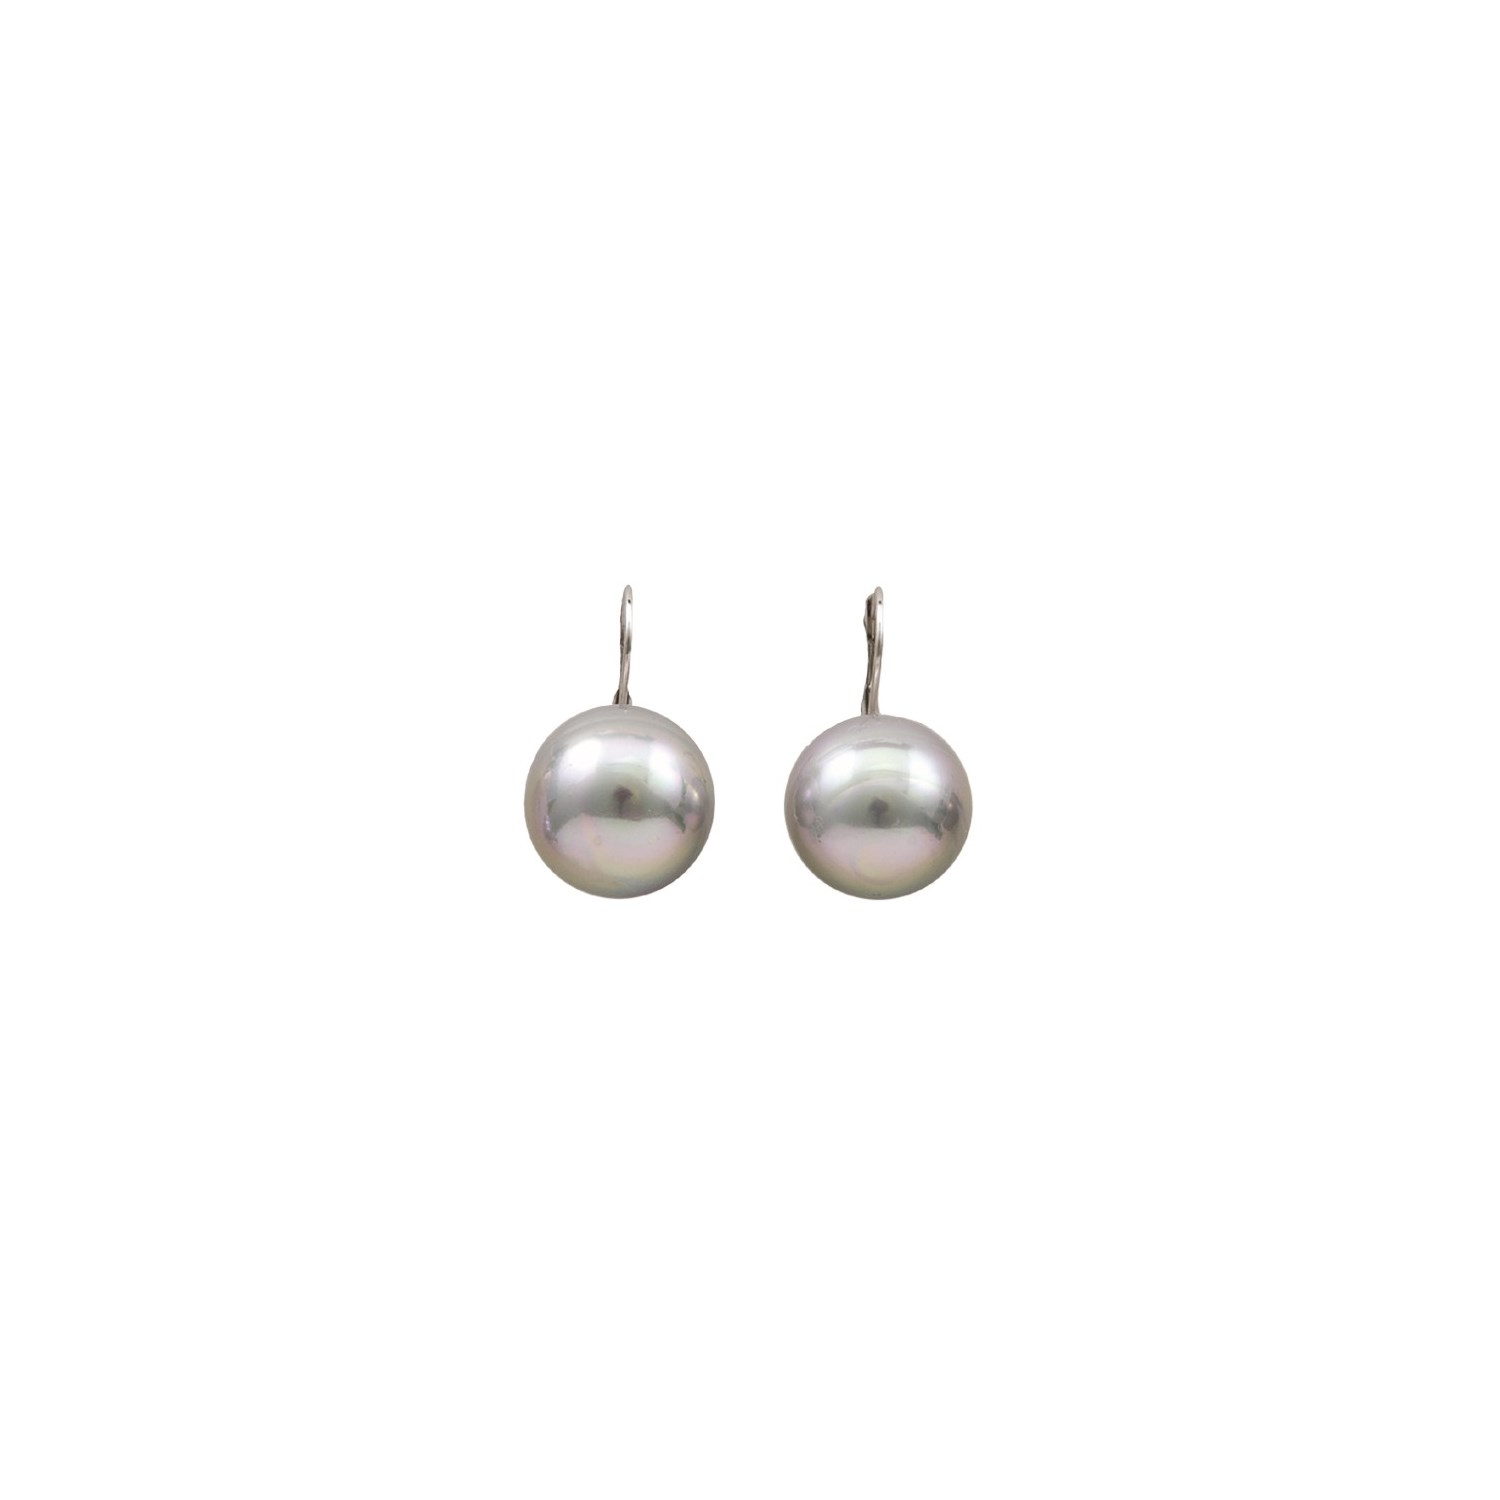 duo earrings handmade shop white bradby giant pearl claudia